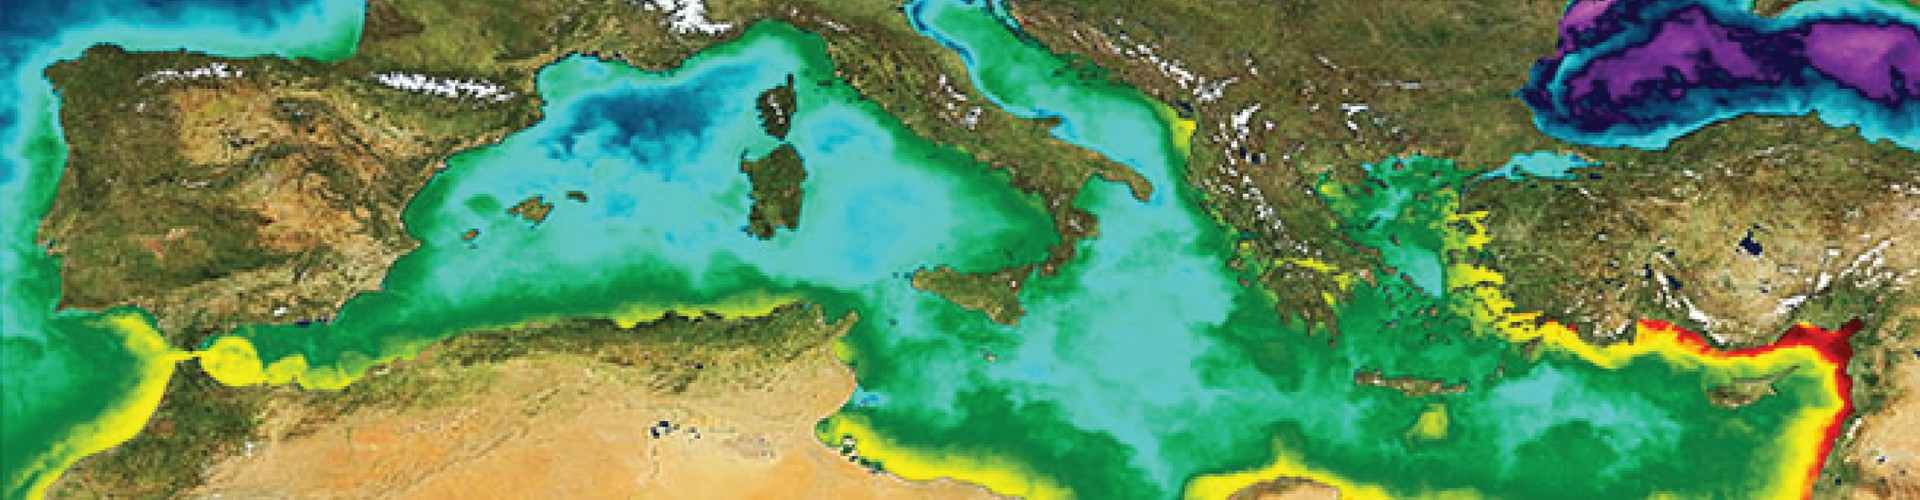 A day's sea surface temperature values in the Mediterranean, ranging from about 5 degrees Celsius (blue/violet) to 33 degrees Celsius (dark red) during October 2011 (Credit: Land: ESA;  Sea: Medspiration/ESA/Ifremer)